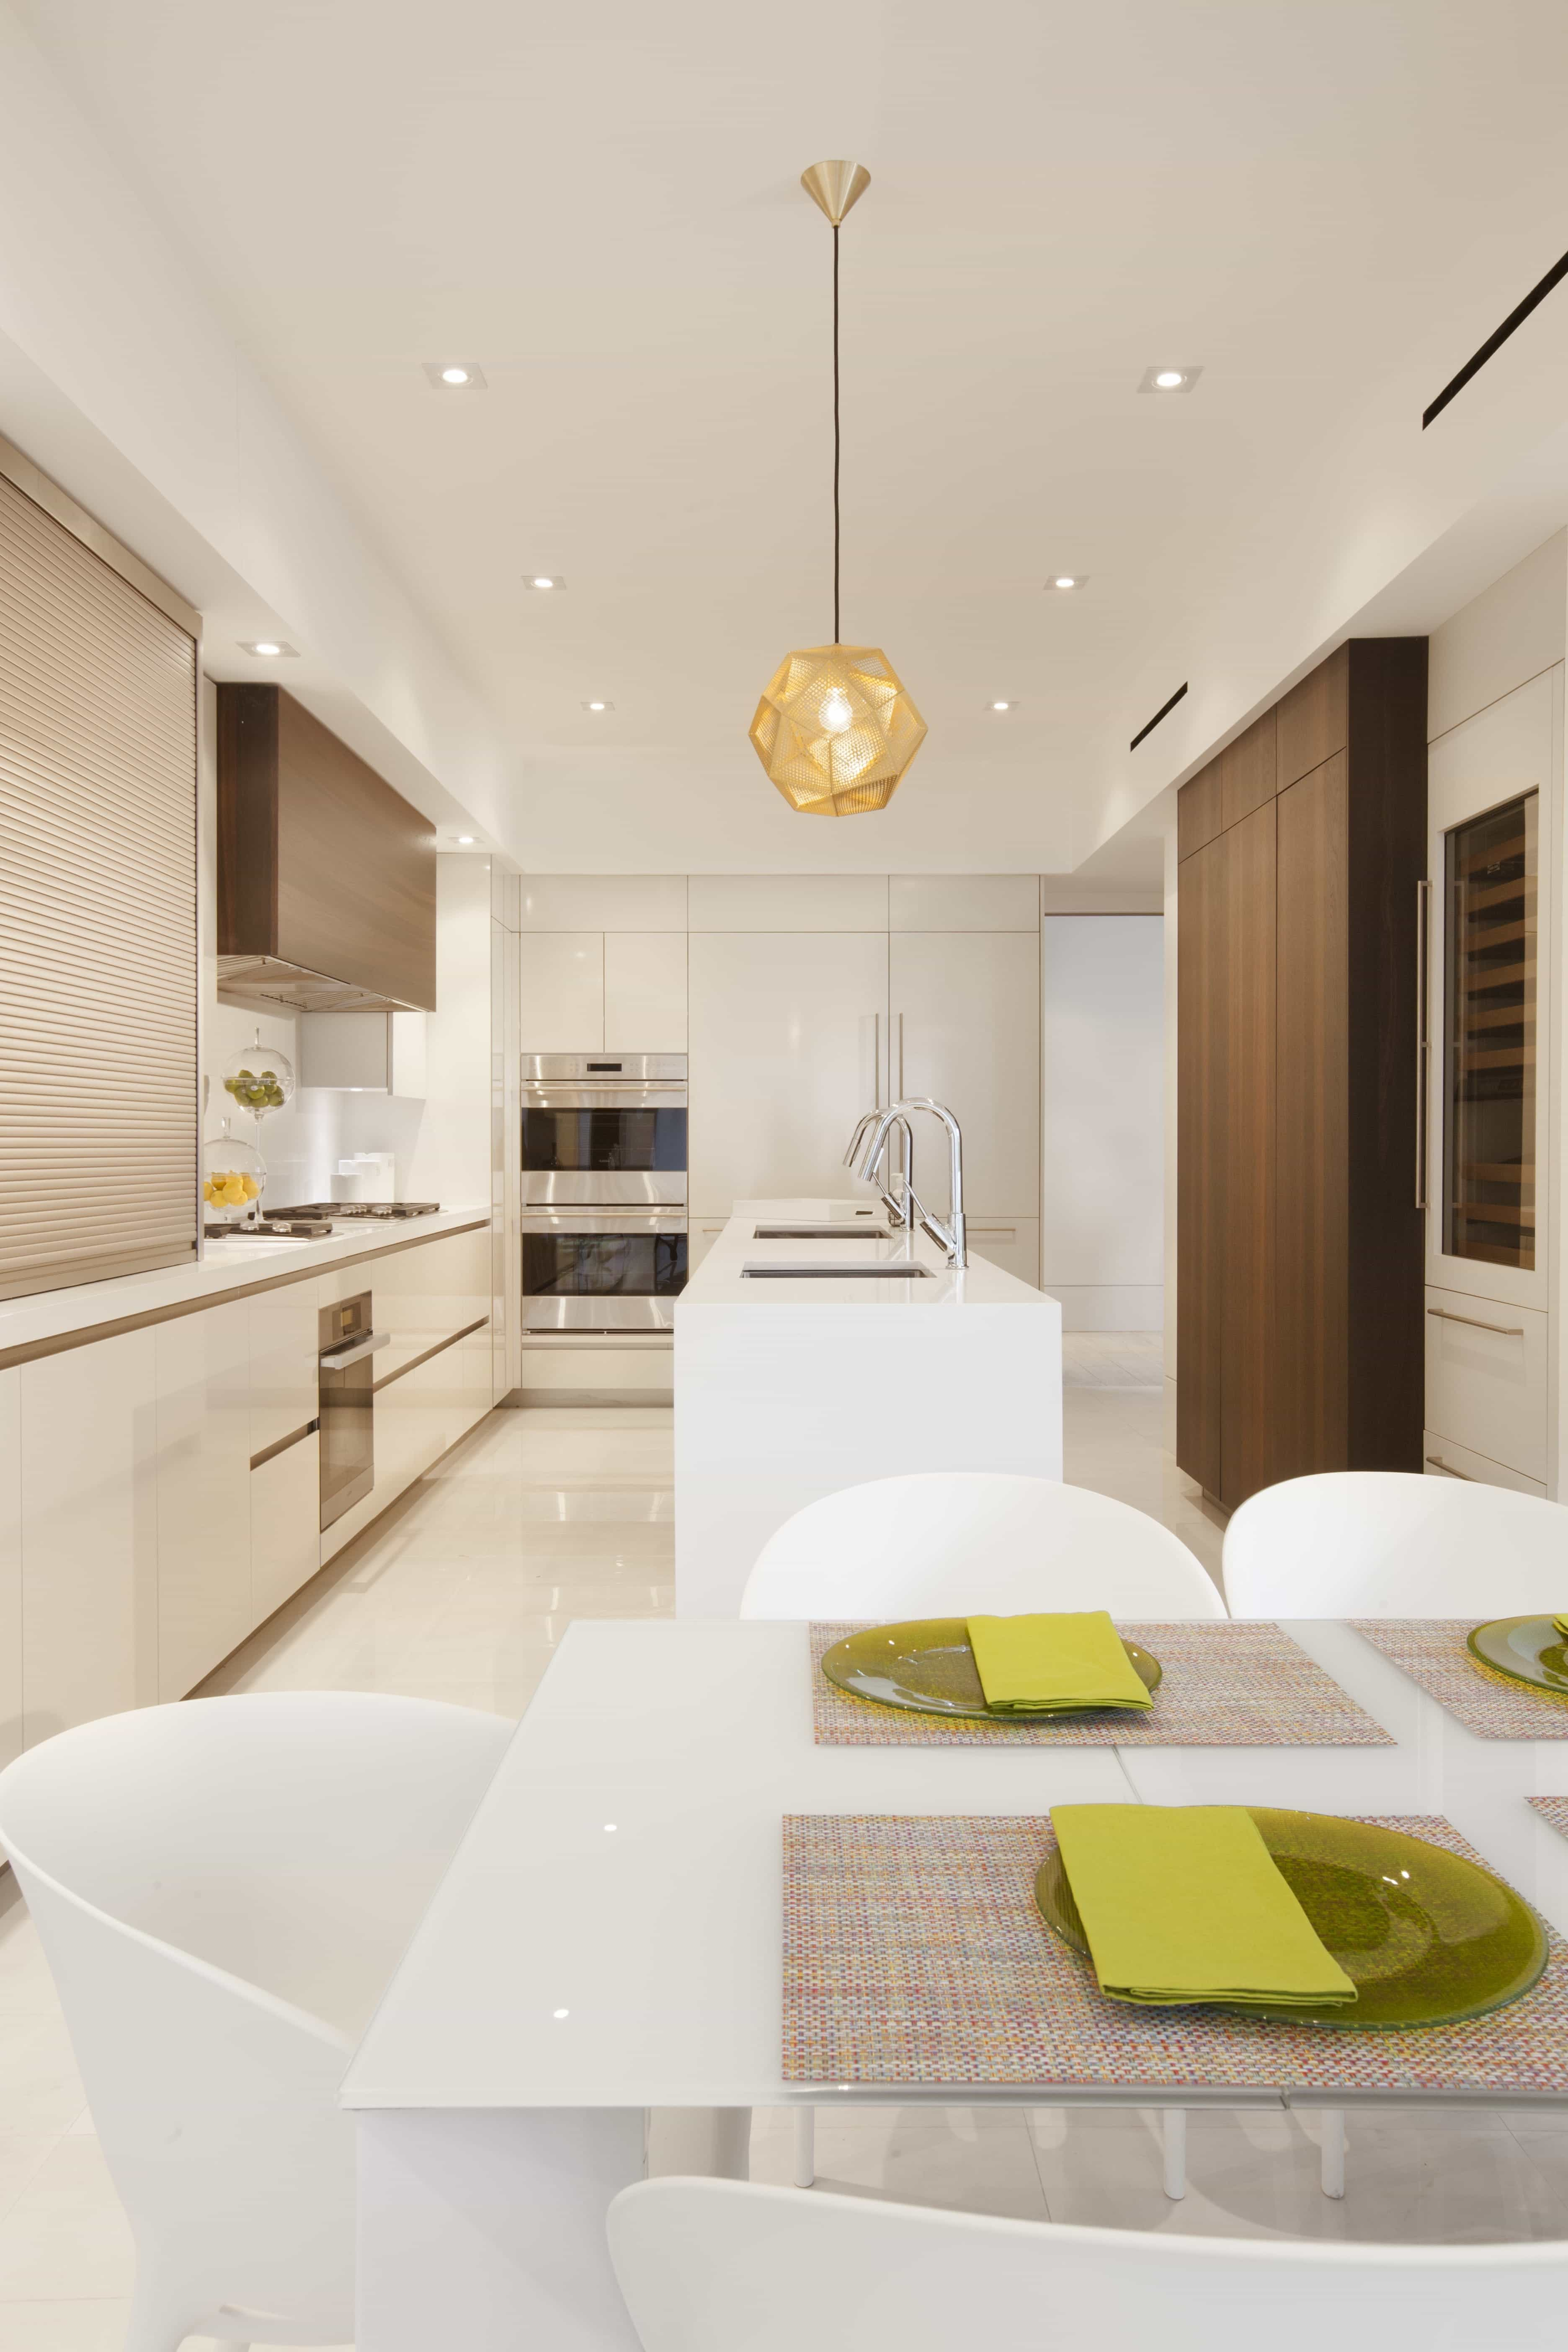 Modern Kitchen Features Sleek And Geometric Cabinets Design (Photo 1 of 26)